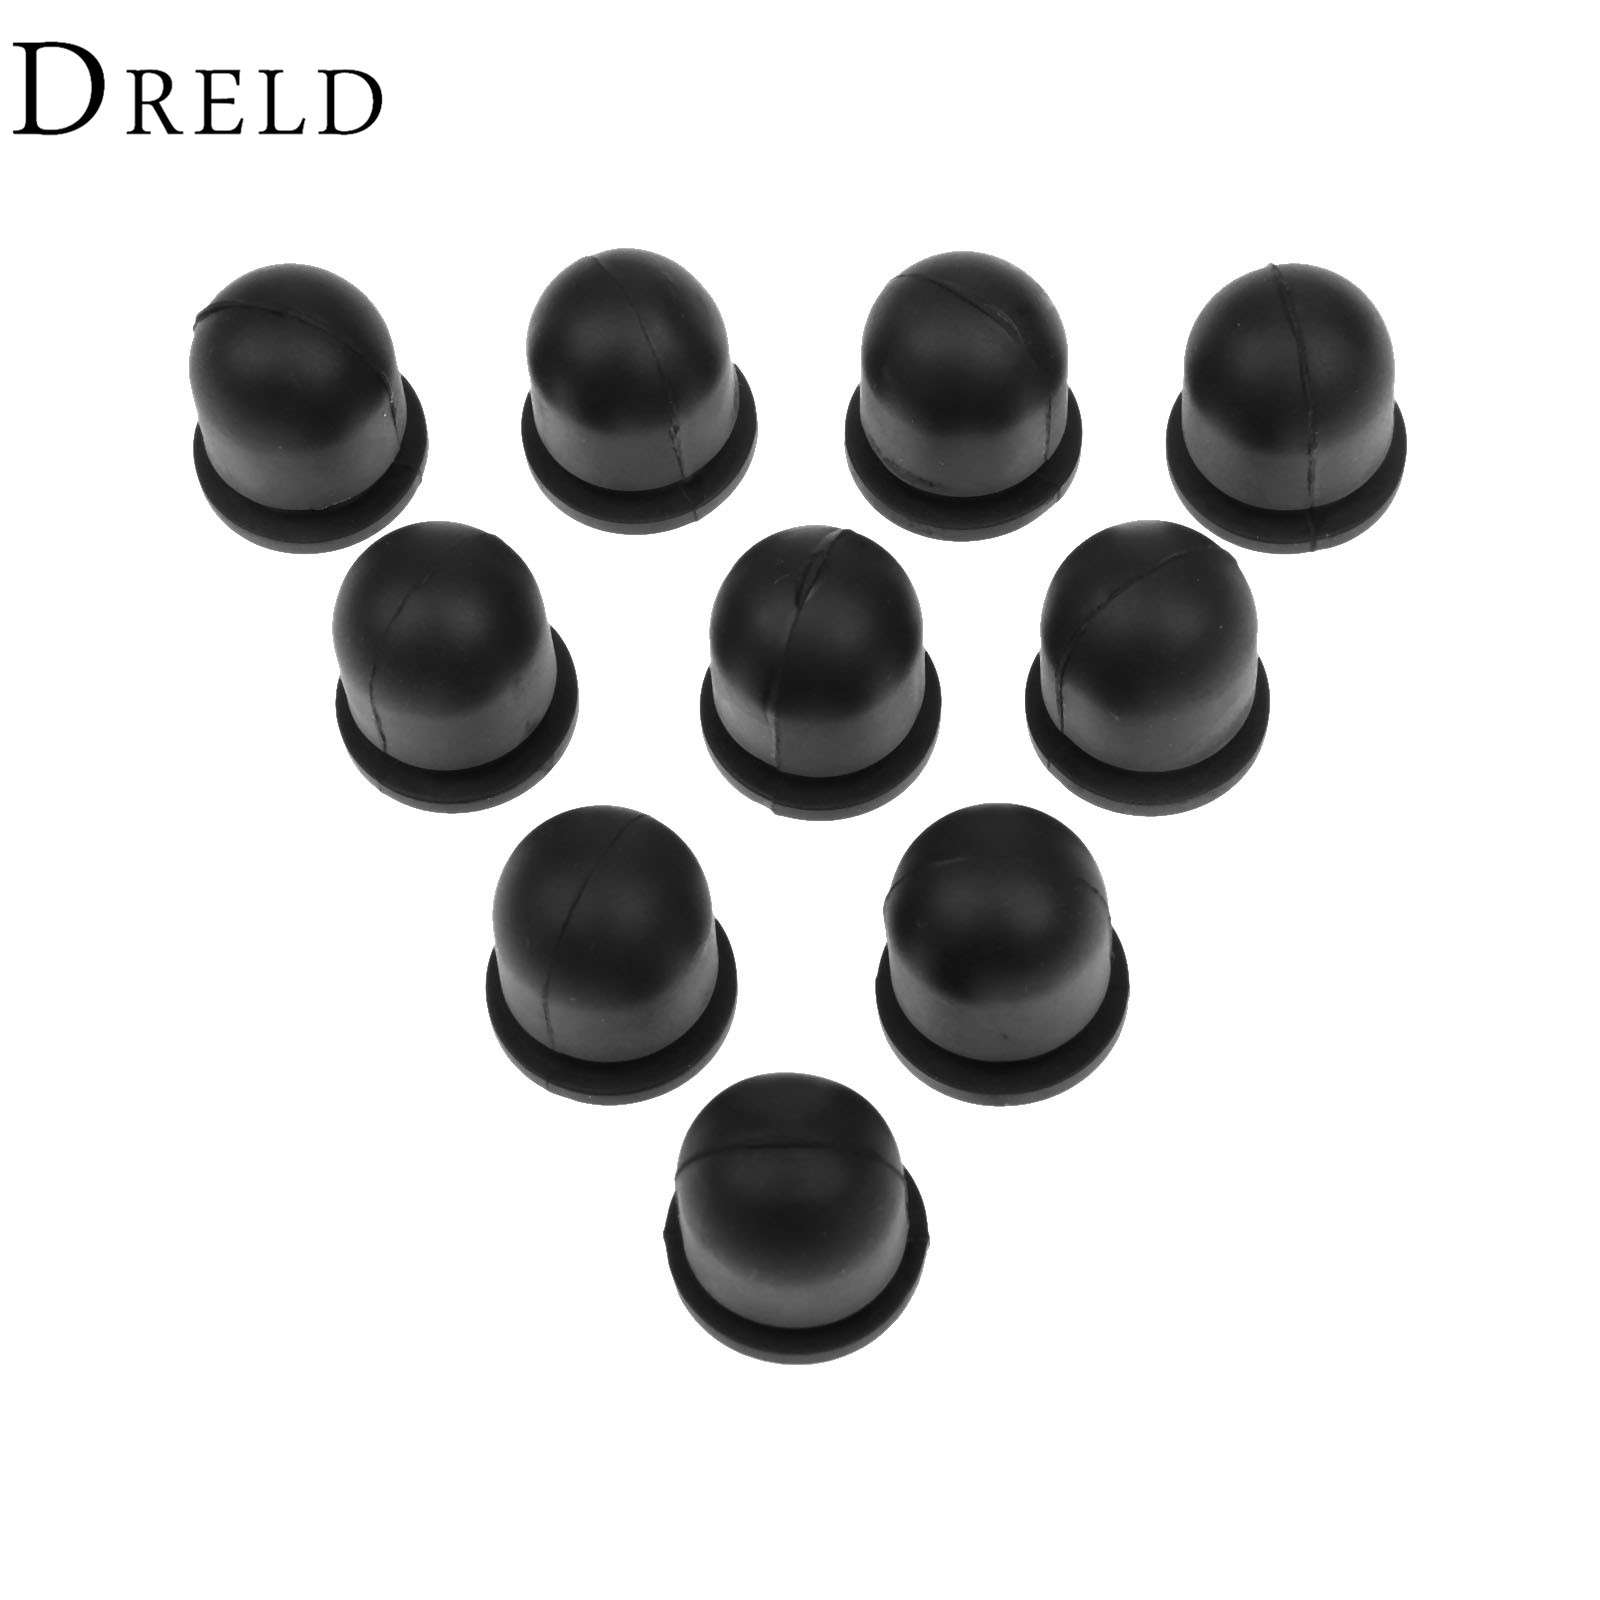 DRELD 10Pcs Carburetor Primer Bulb Button For Kawasaki TD18 TD24 TG33 Grass Trimmer Parts For STIHL 4112-358-2500 Garden Tools